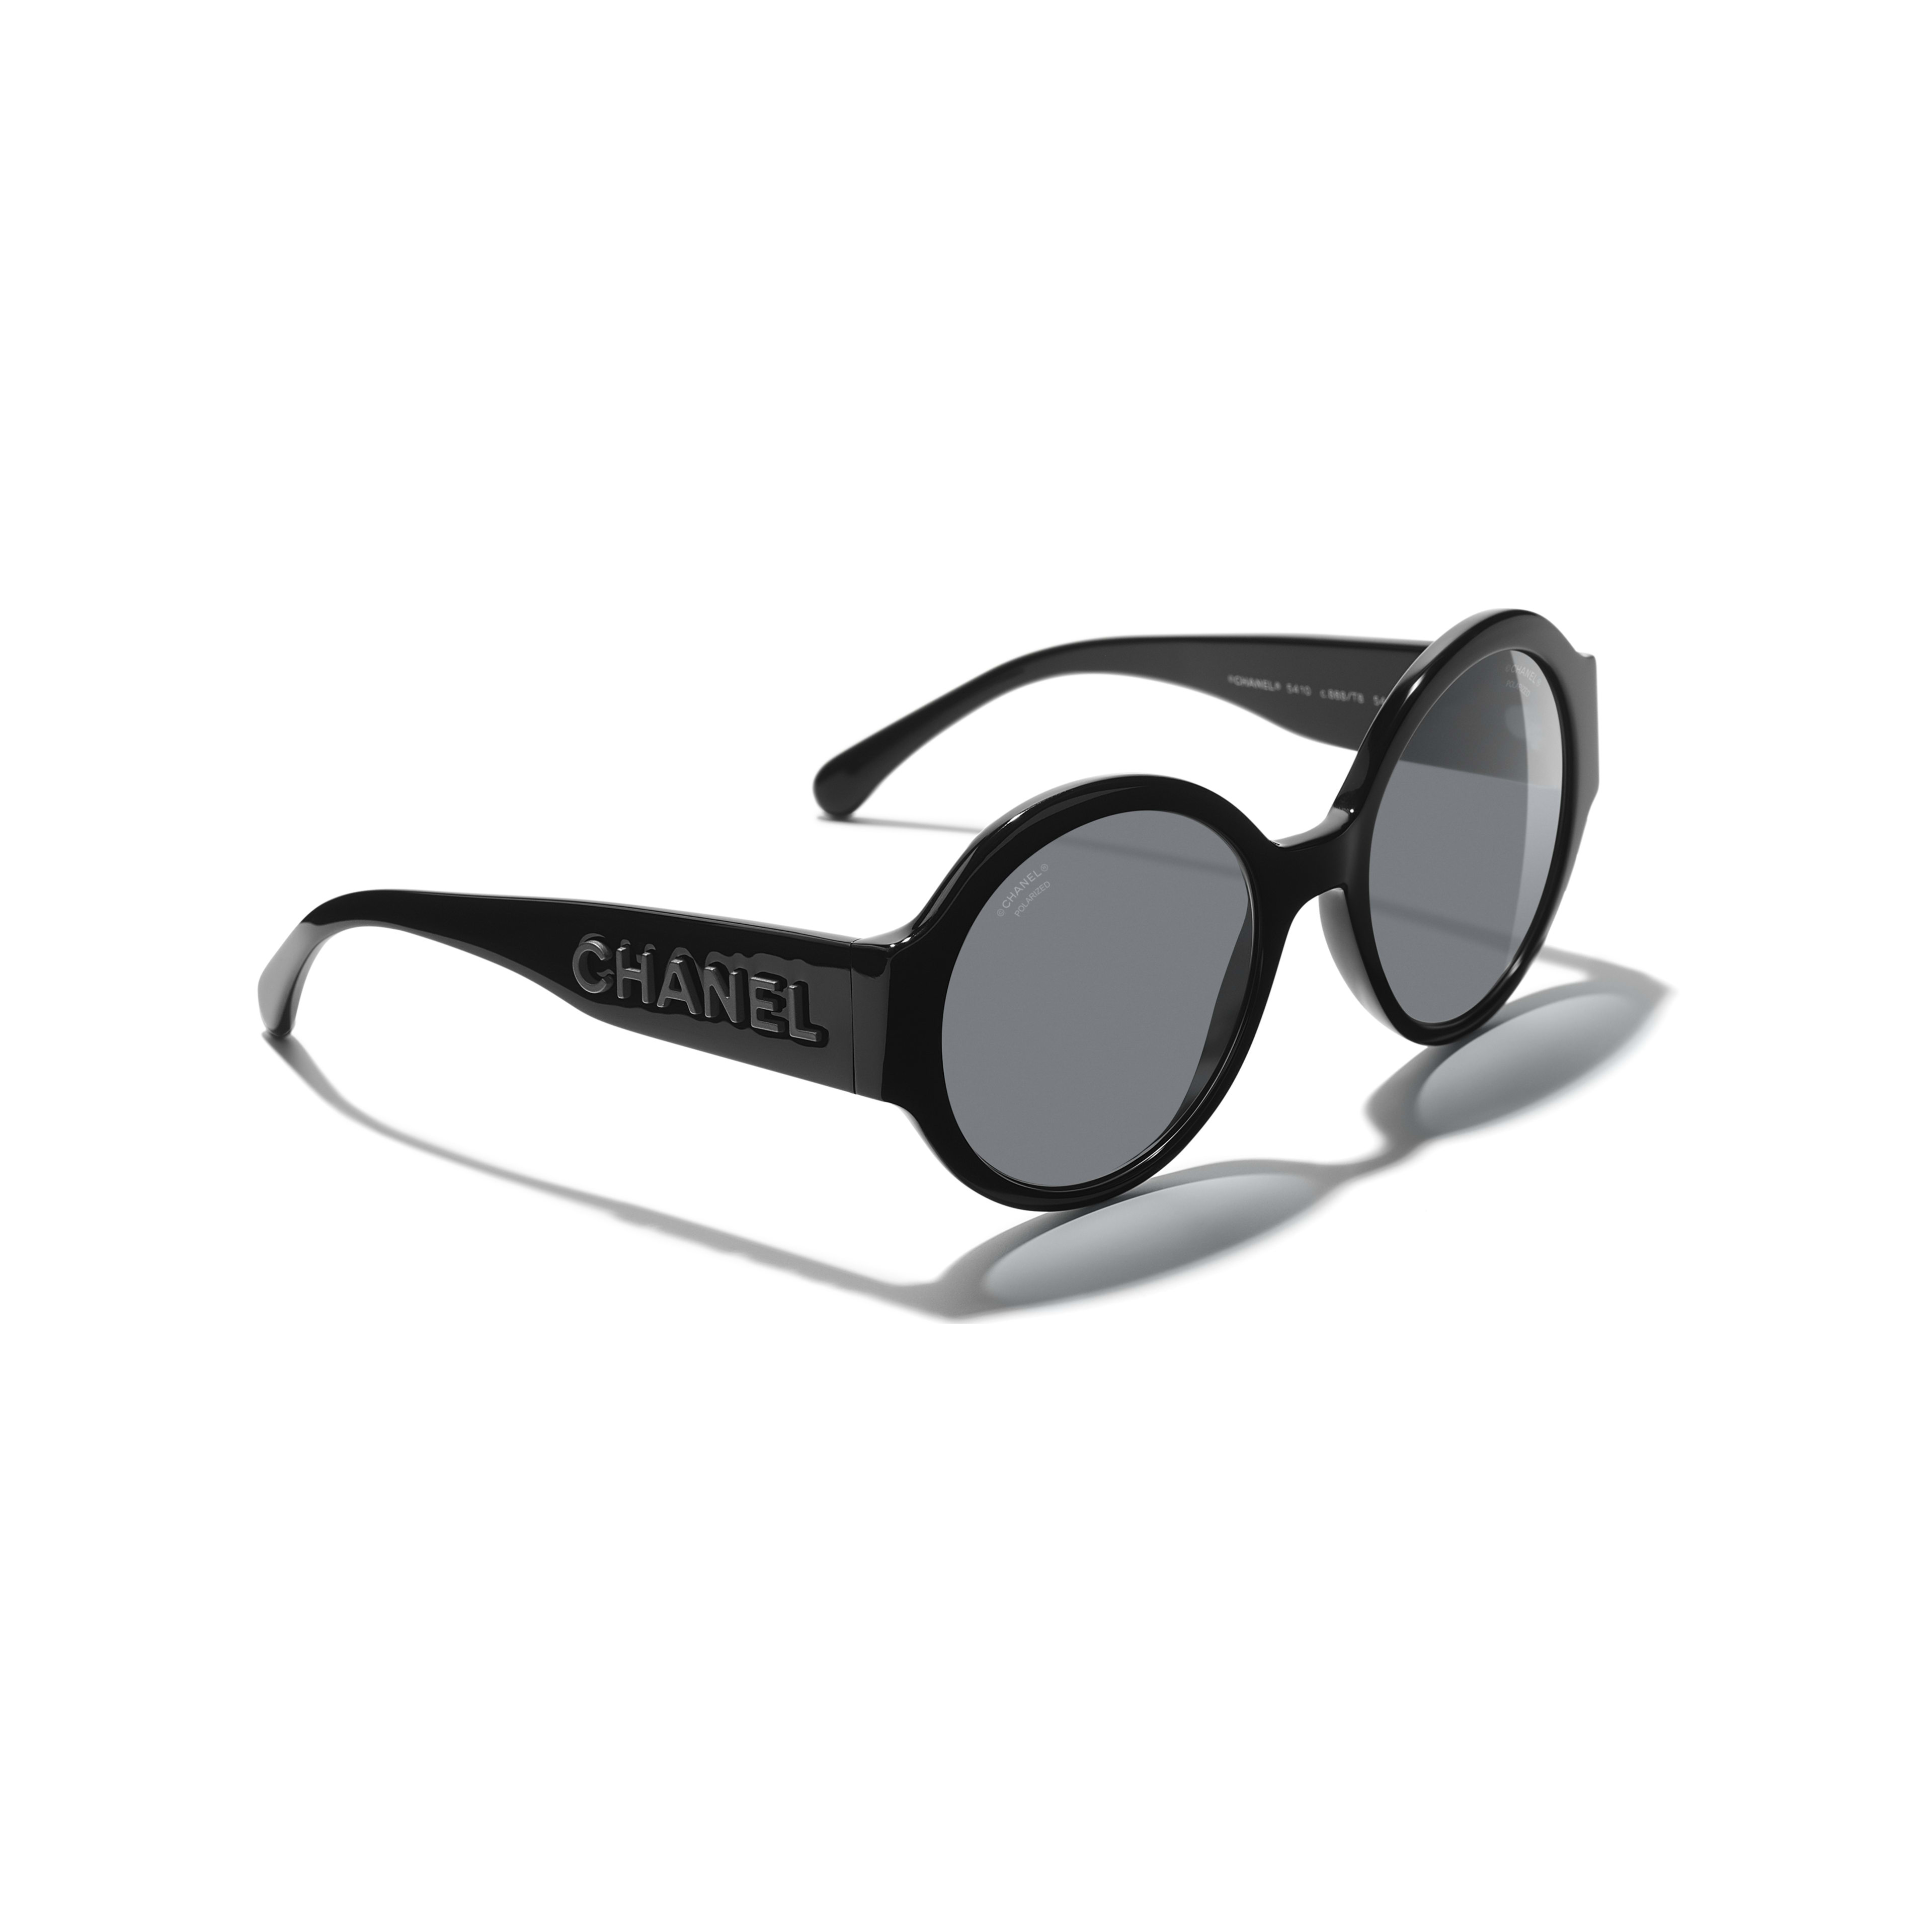 Round Sunglasses - Black - Acetate - CHANEL - Extra view - see standard sized version